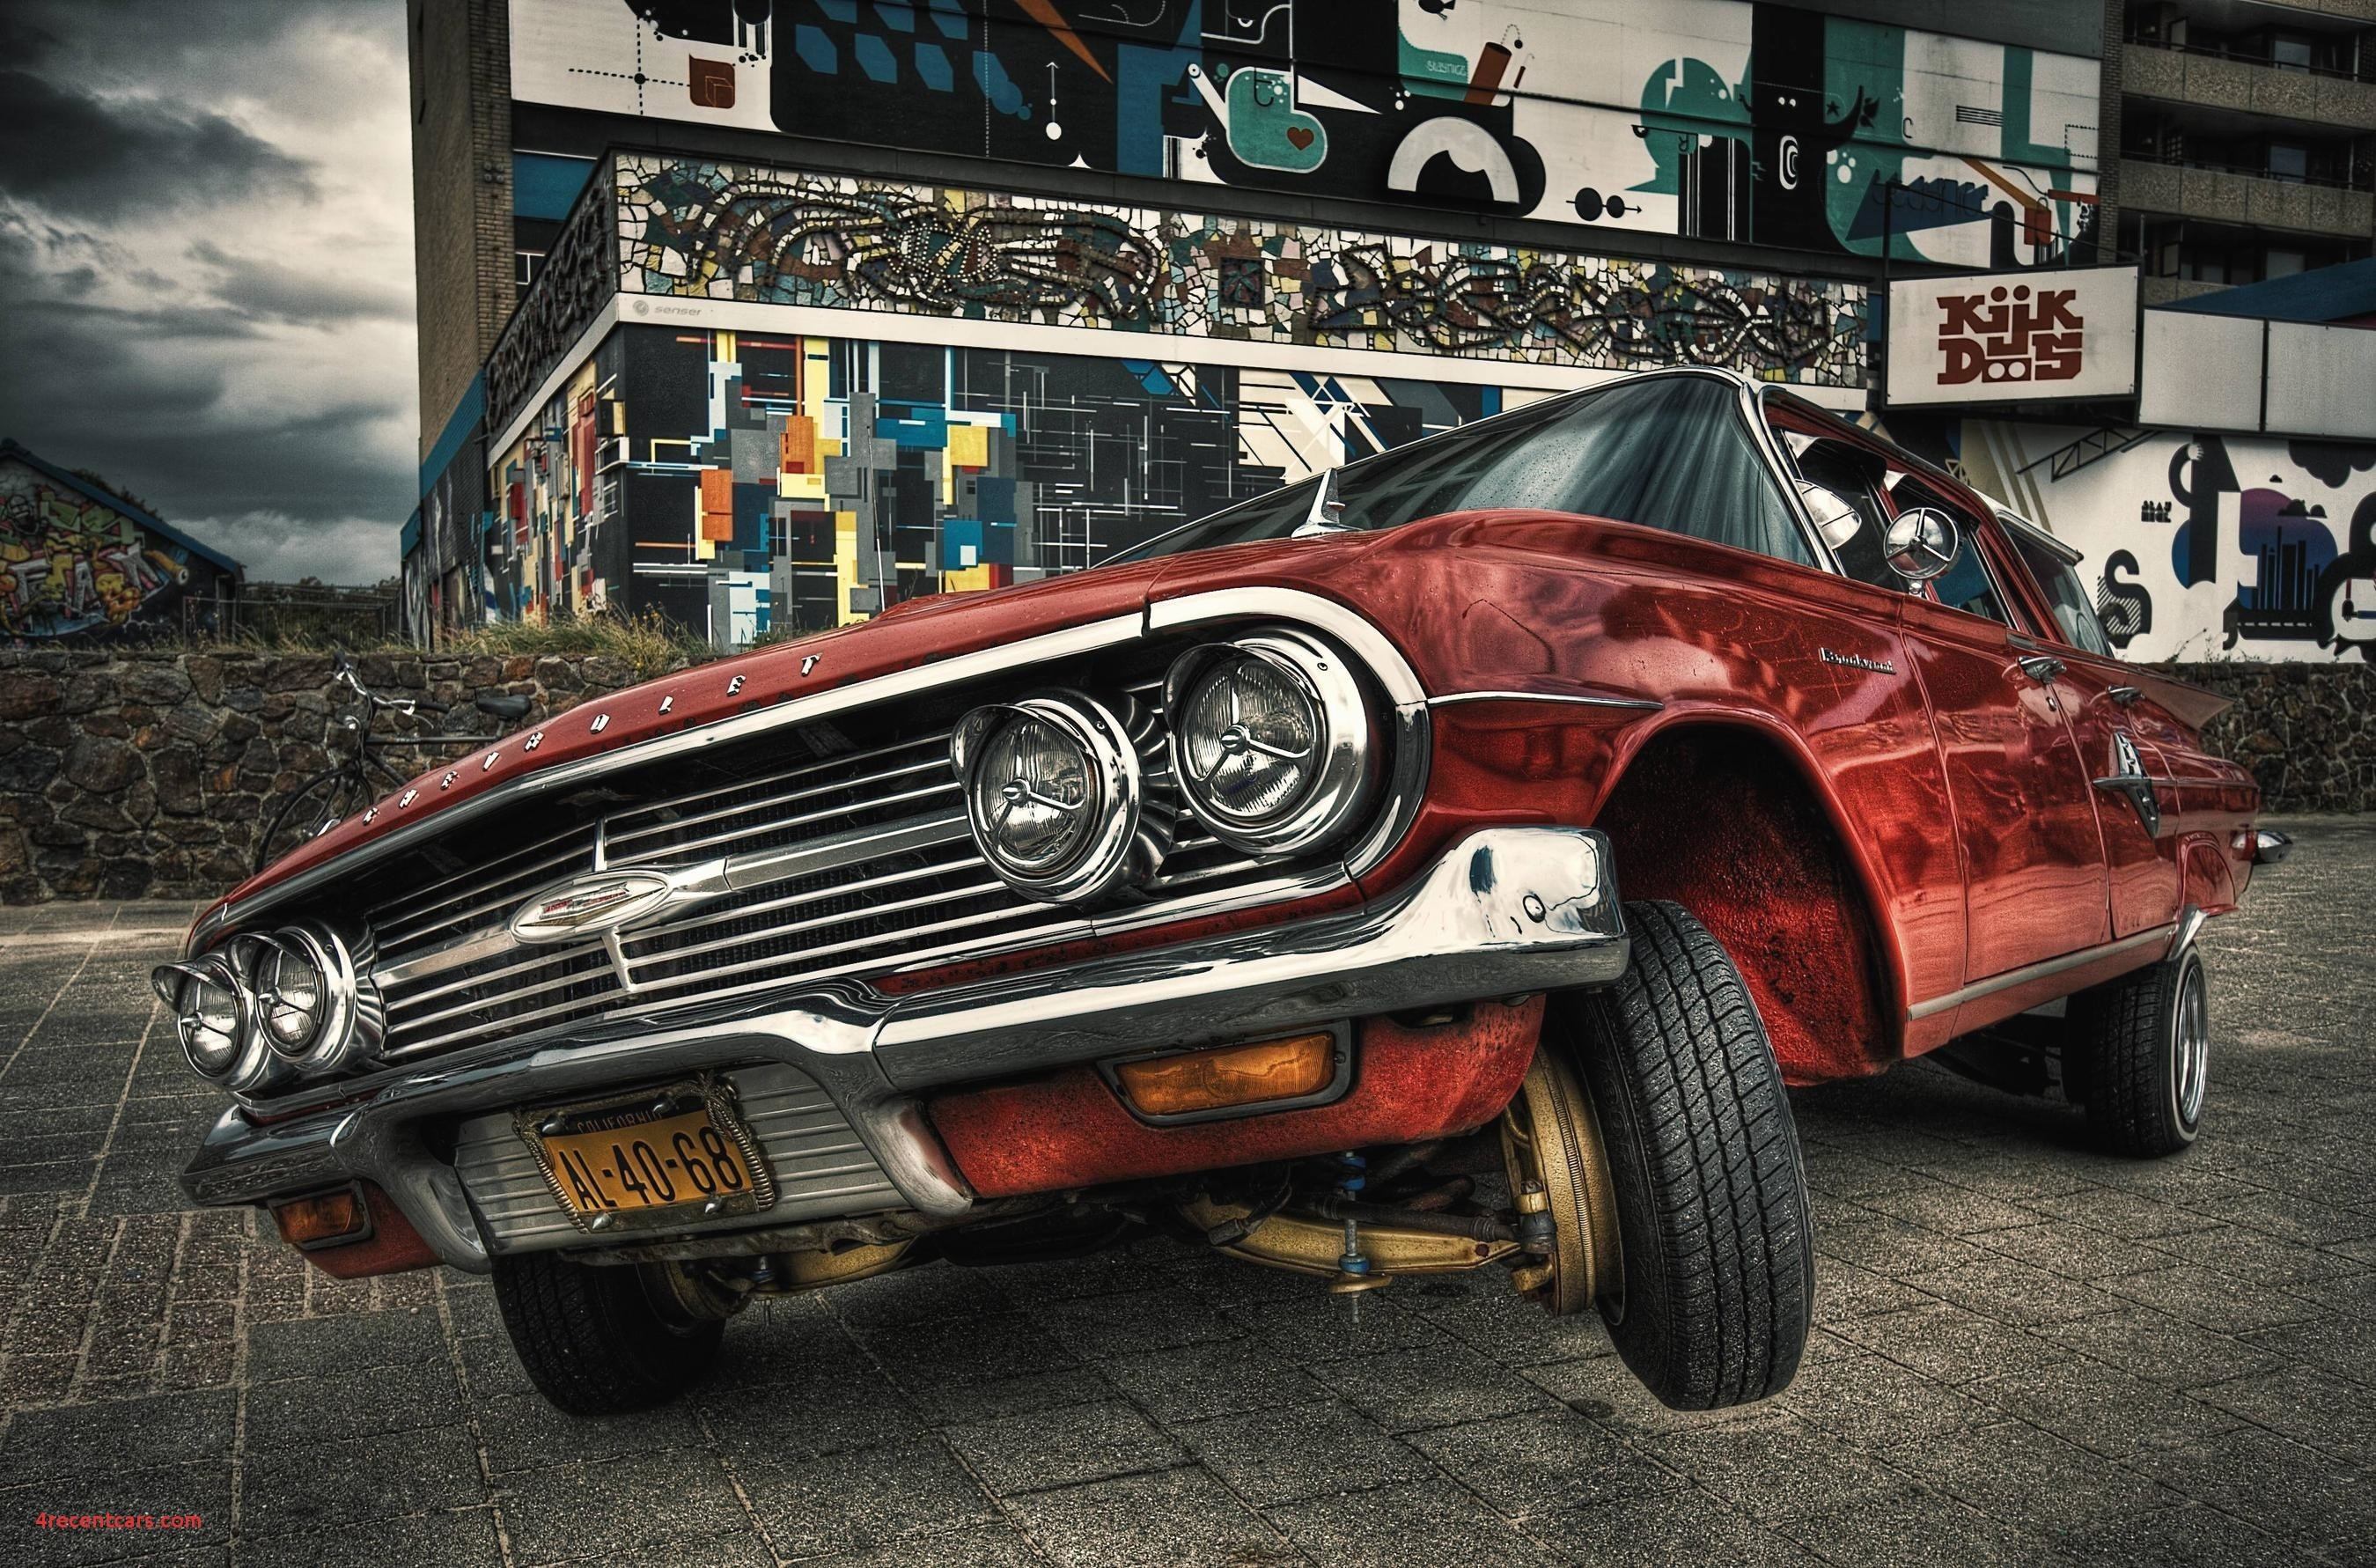 Res: 2699x1781, Lowrider Car Wallpaper Elegant Lowrider Arte Wallpapers 20 Pictures